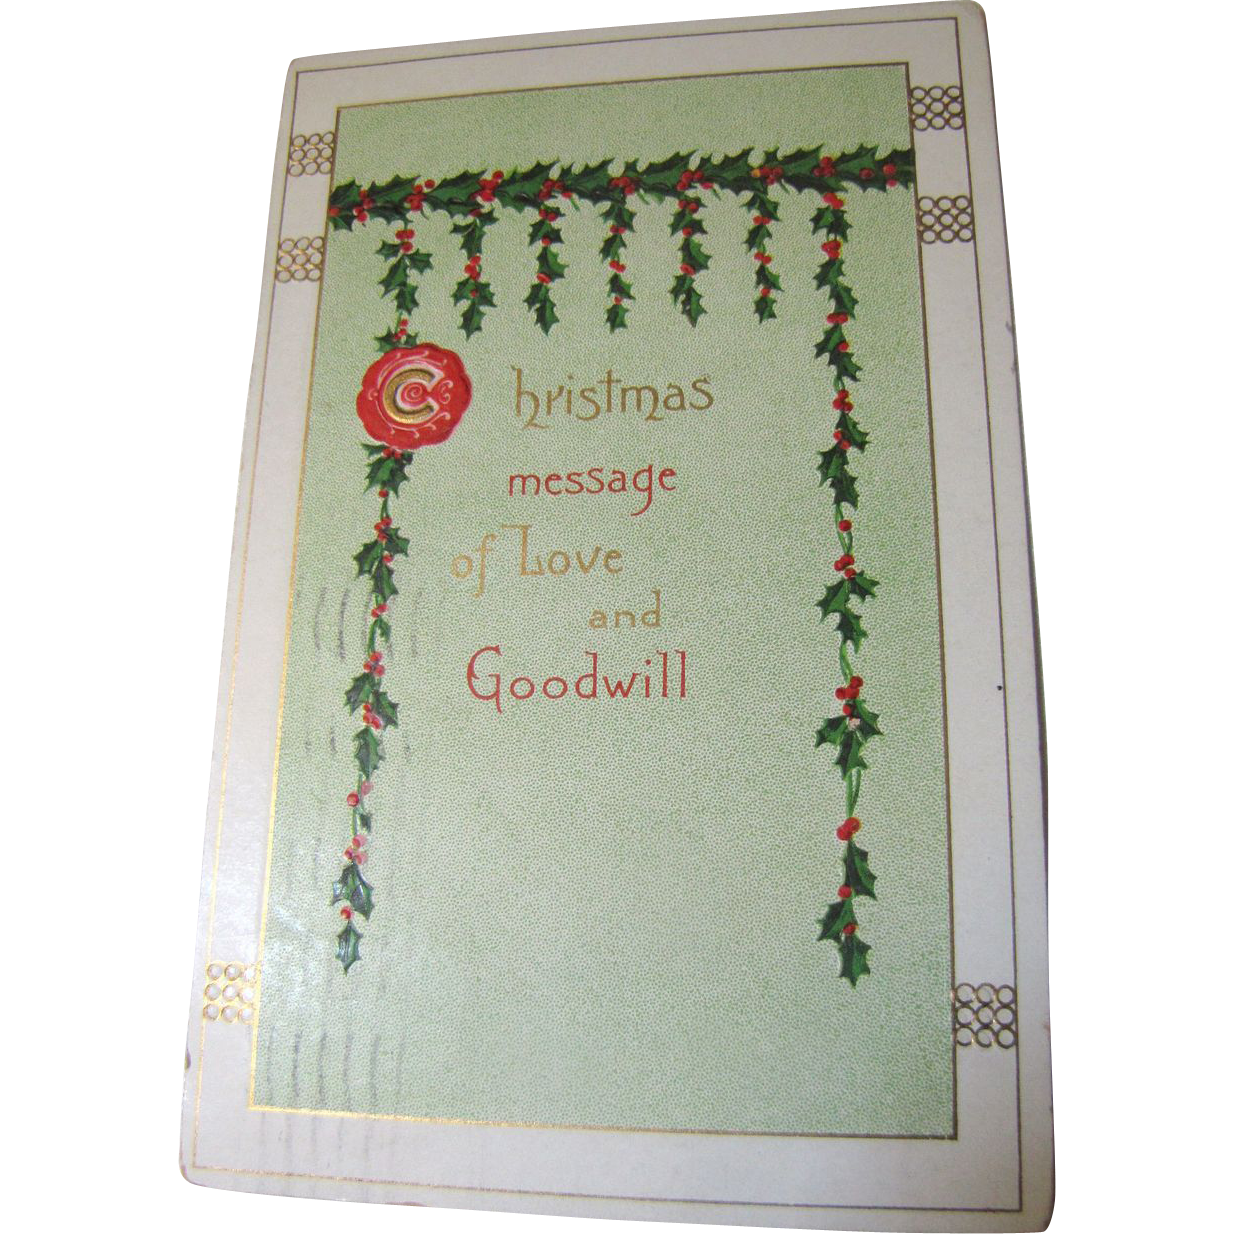 1910, Christmas Message of Love and Goodwill Postcard, postmarked Dec. 24,1910‏